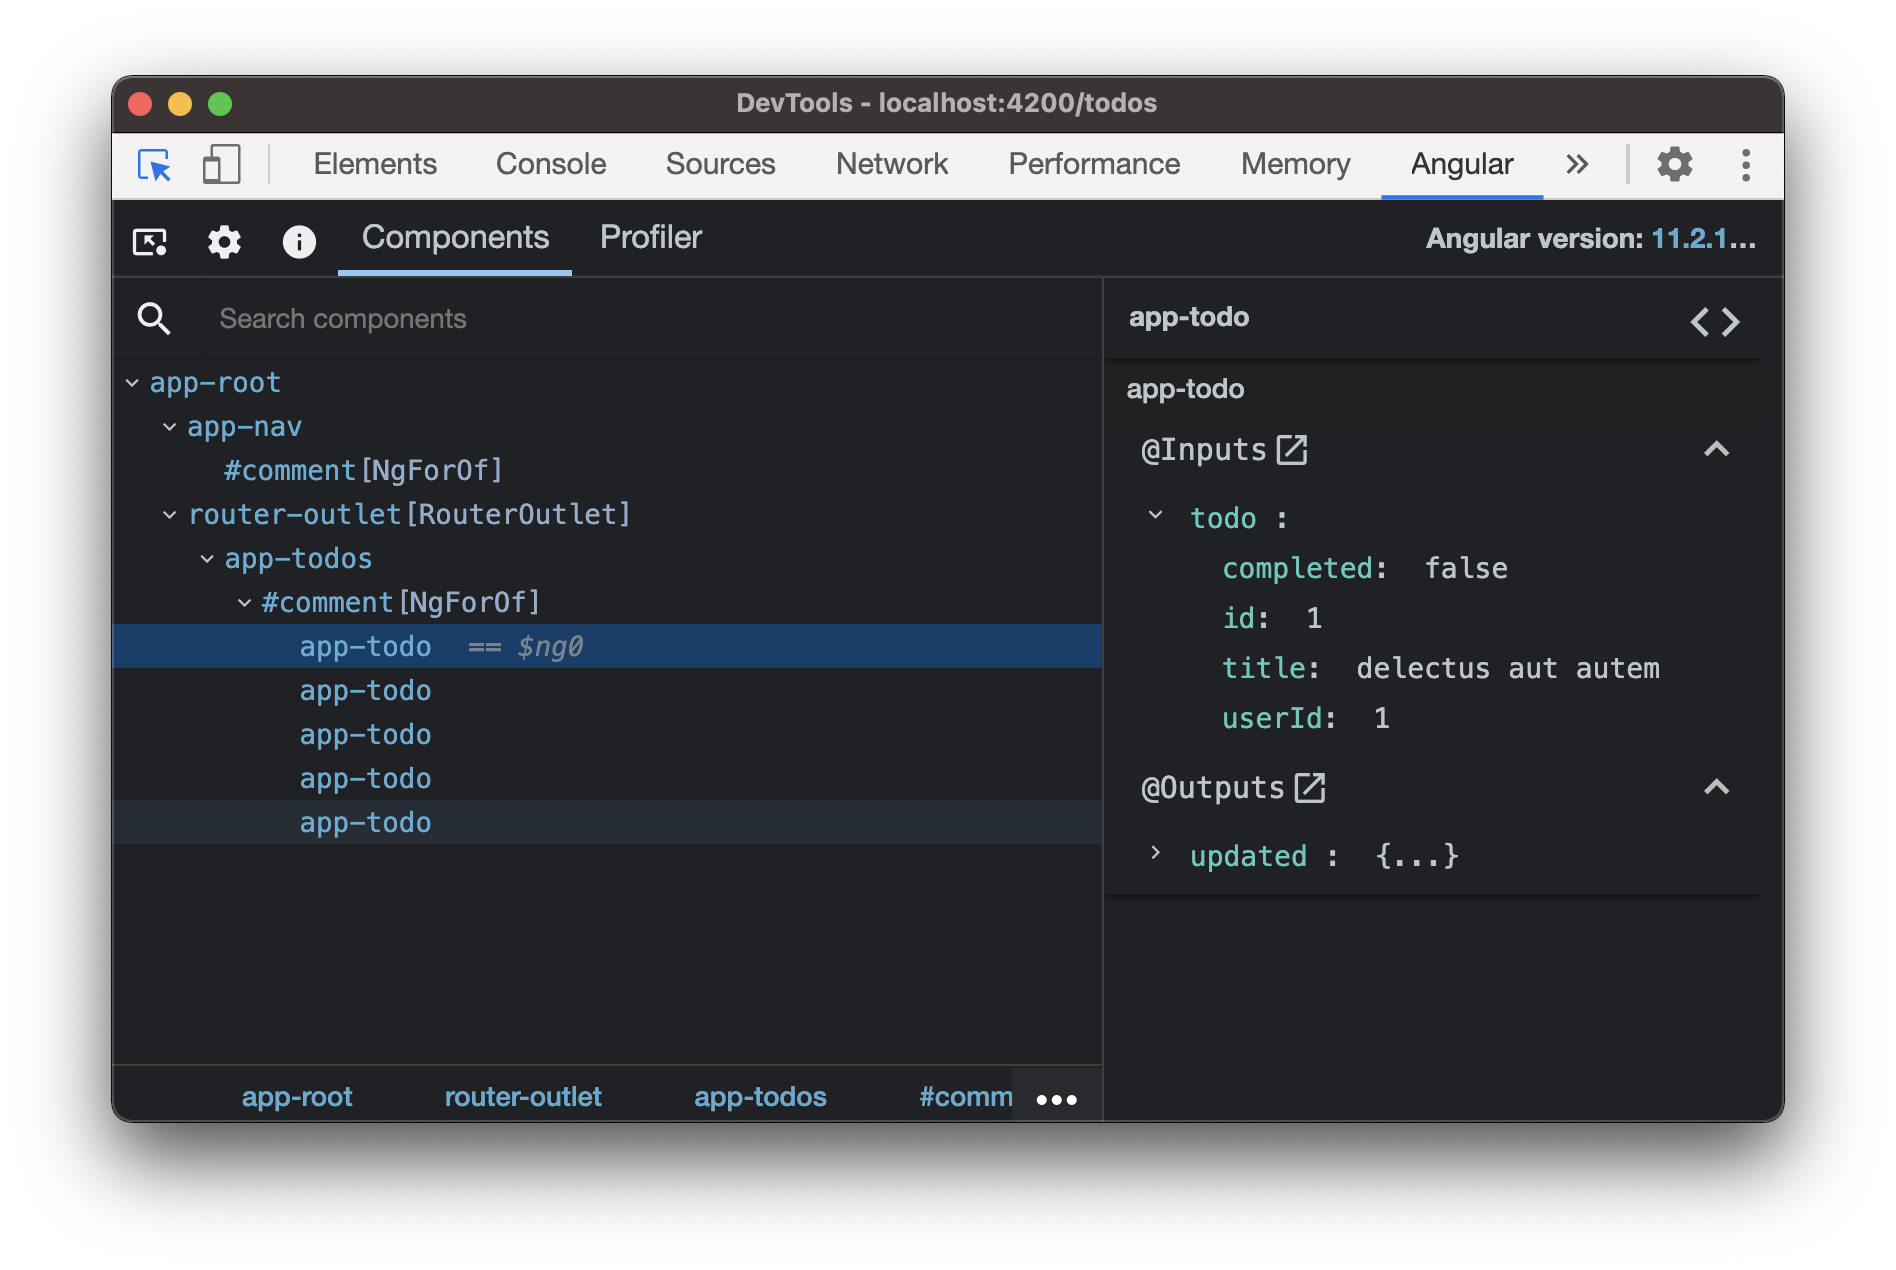 Angular dev tools showing the app-todo component